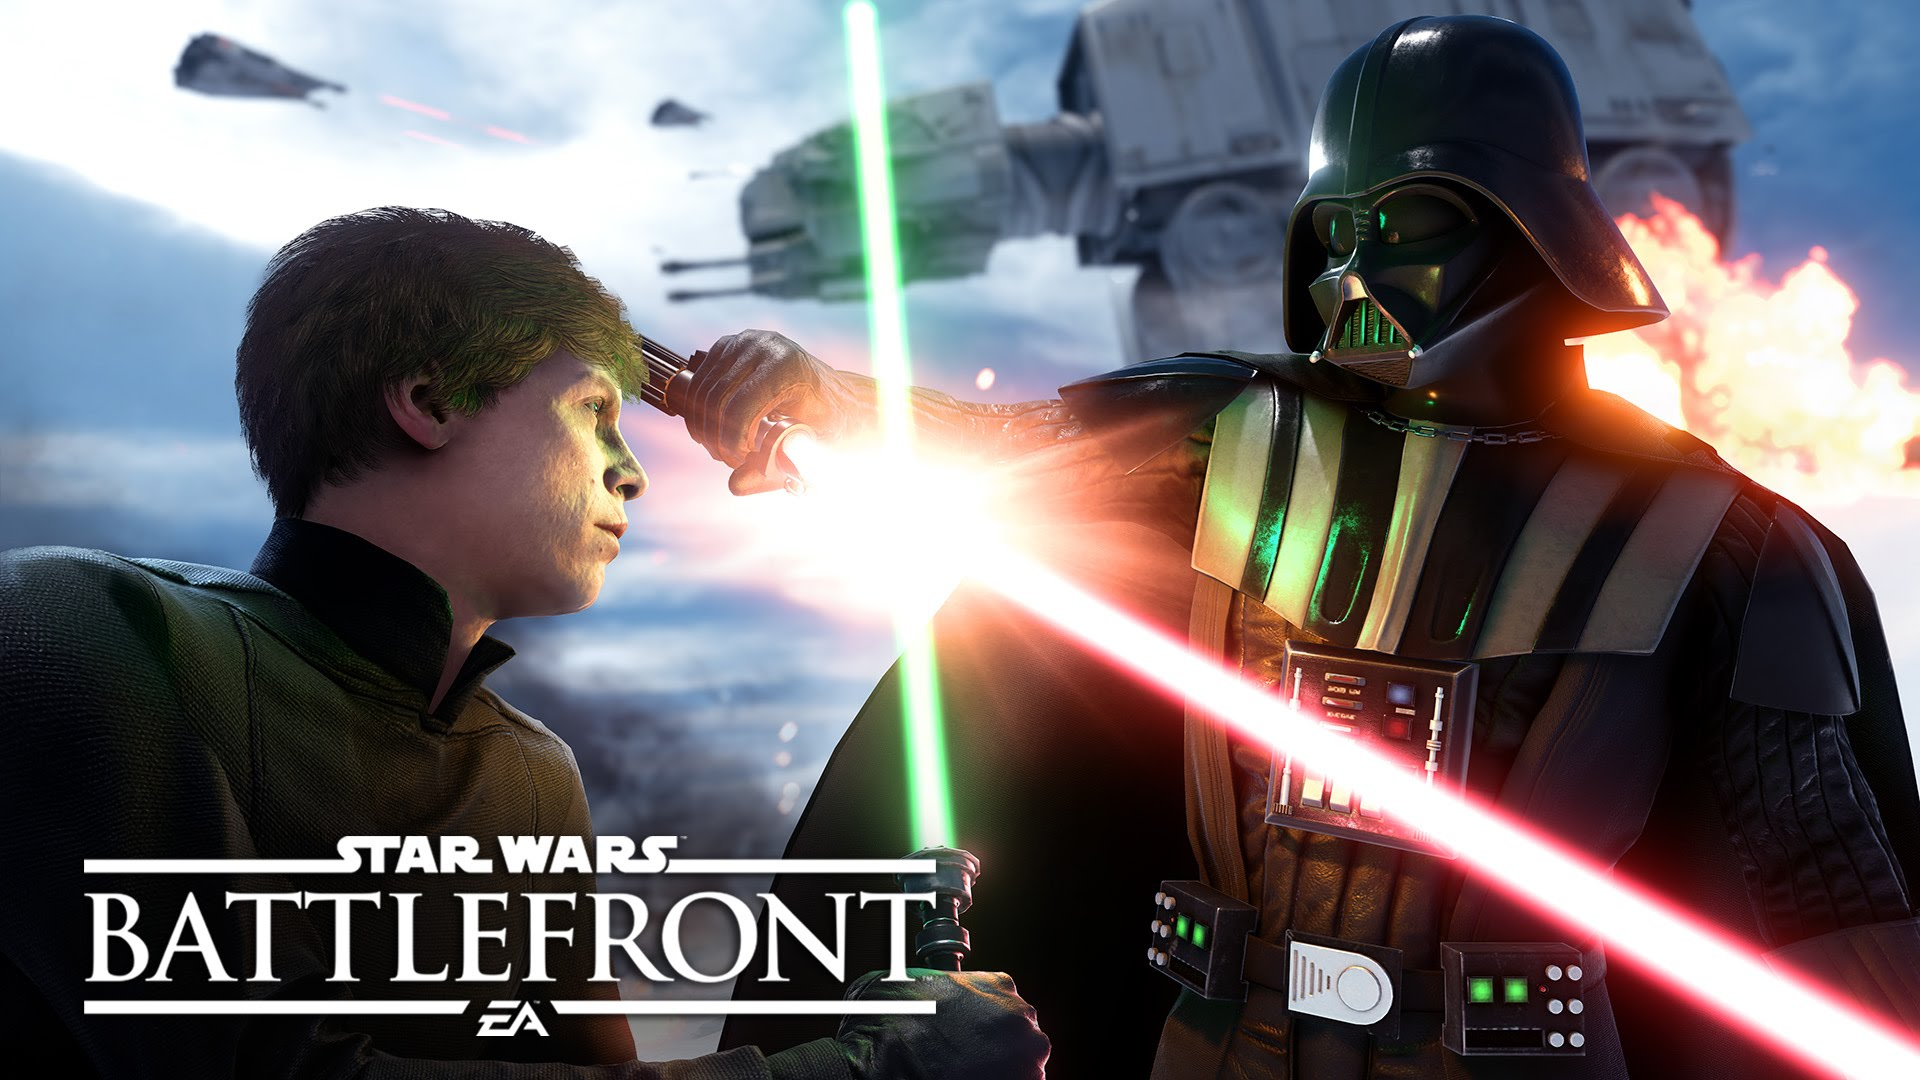 Star wars battlefront 121115